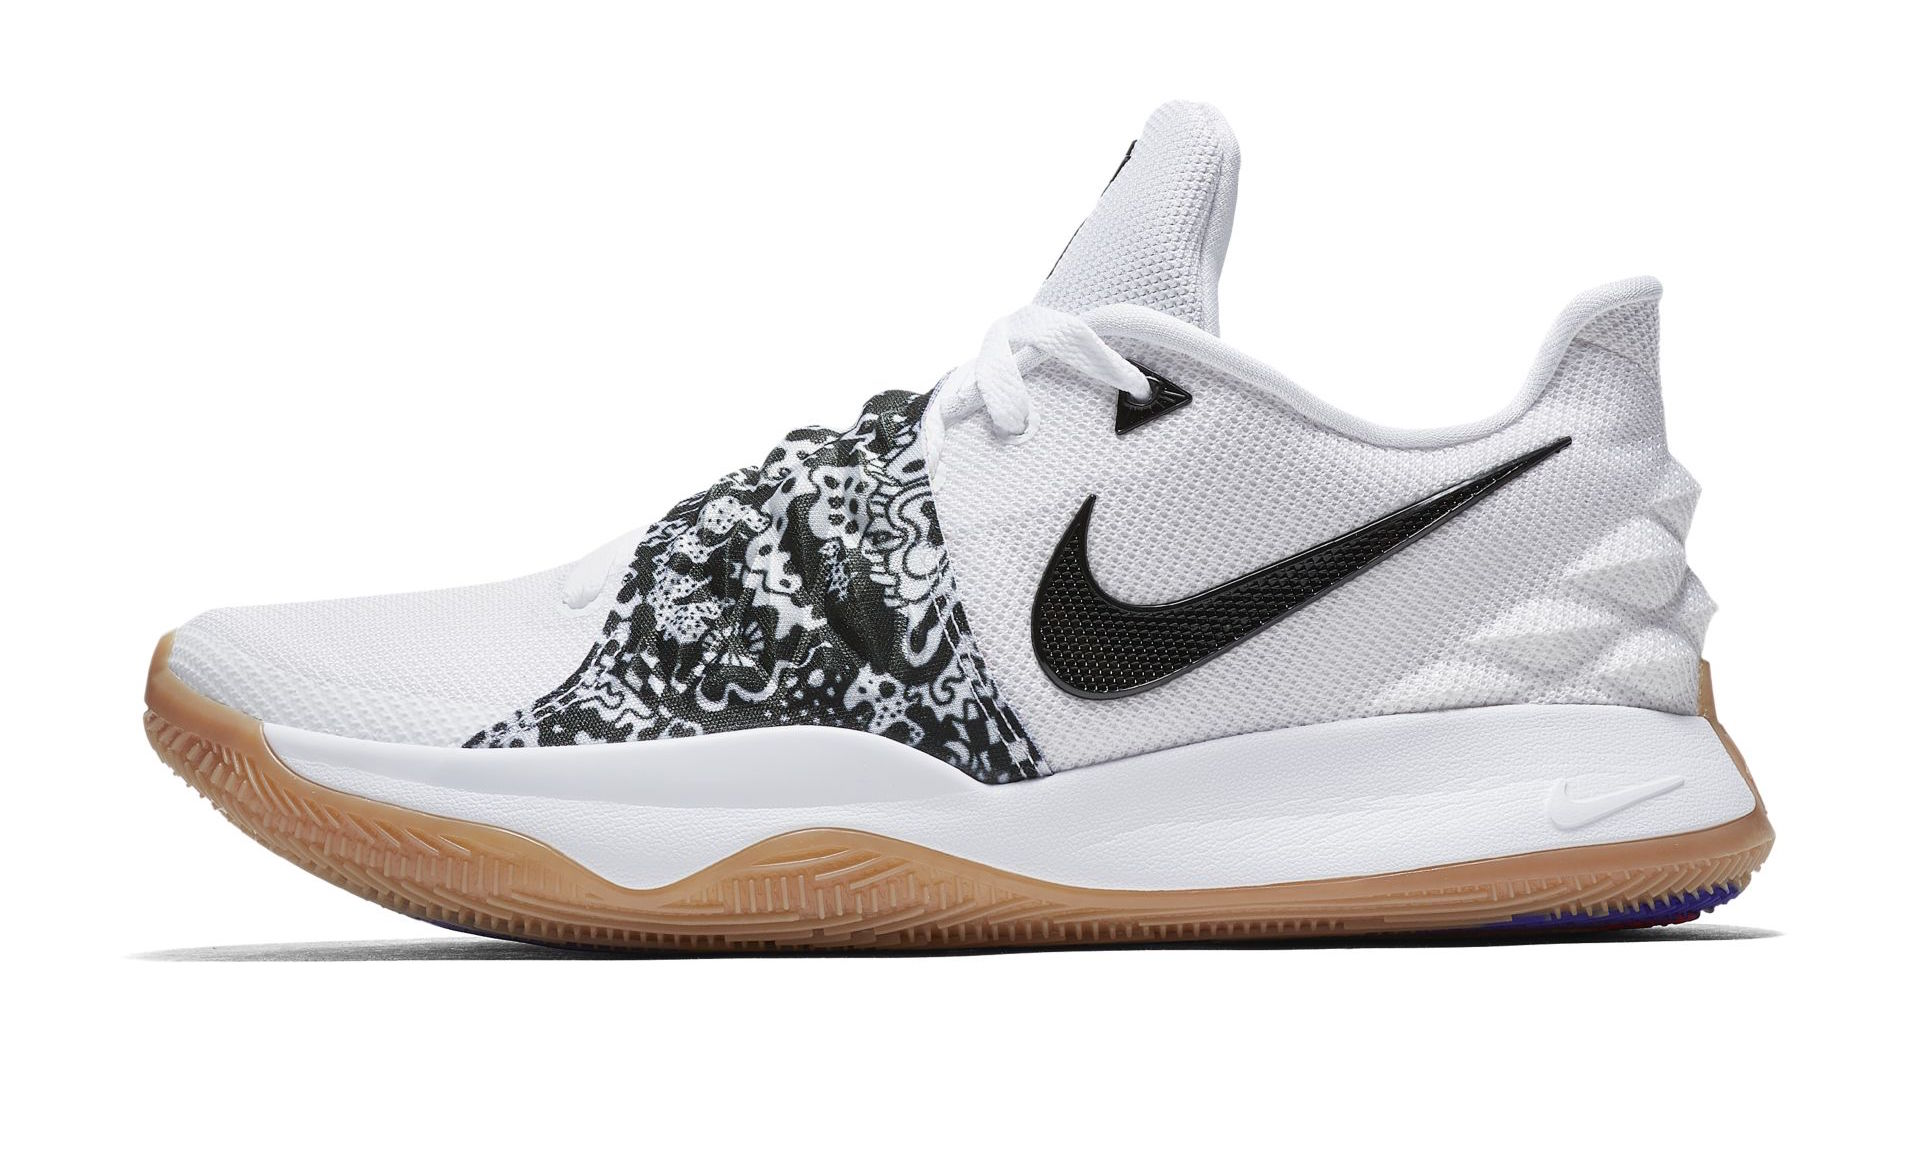 best website 7c661 c080c Official Images: Nike Kyrie 4 Low White Black • KicksOnFire.com